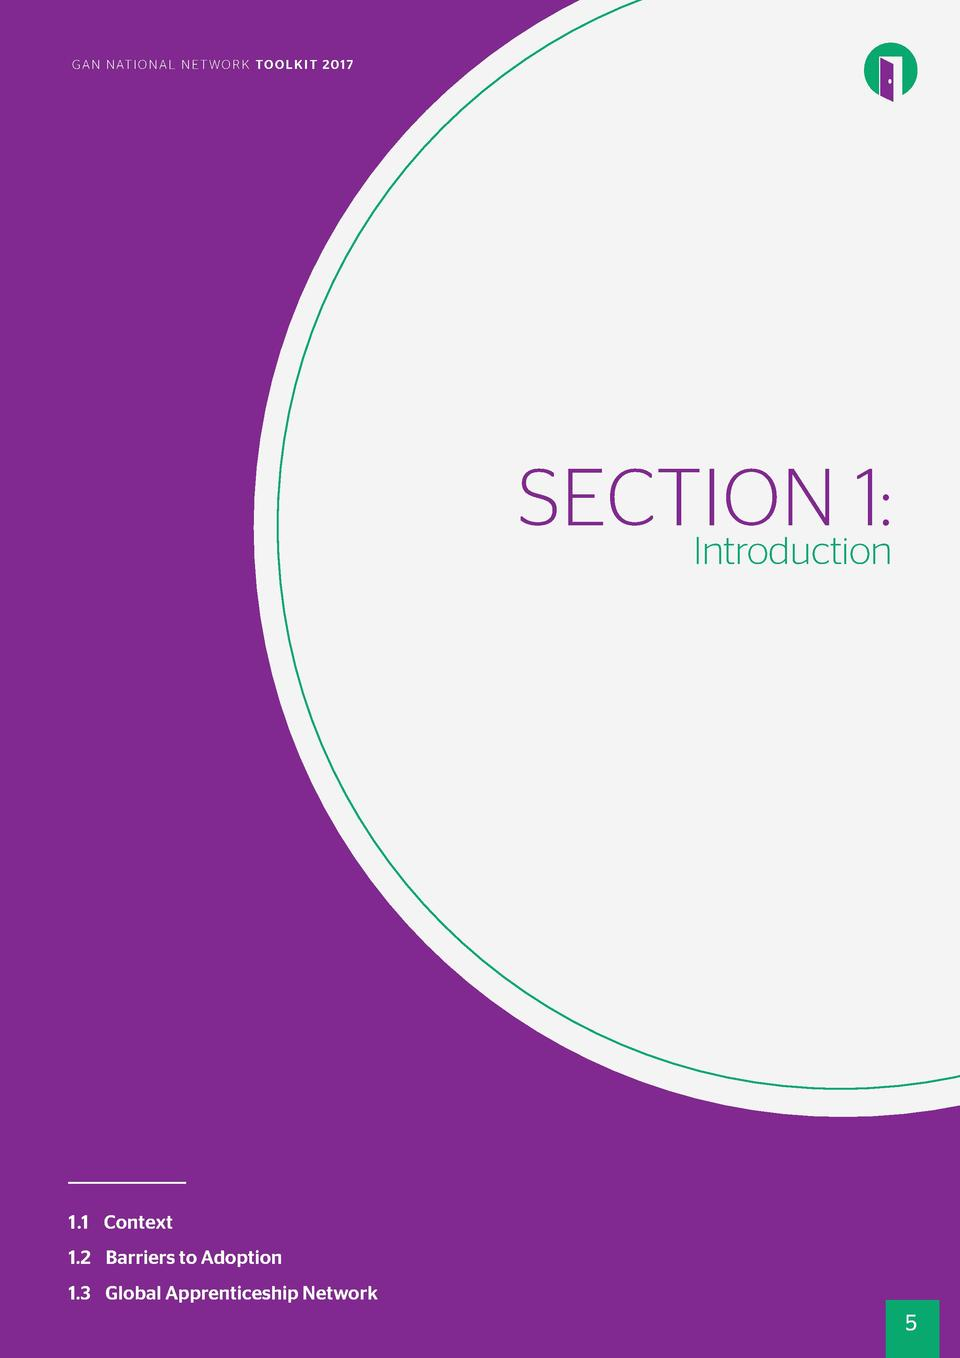 PGRAENFAC E I O N A L N E T W O R K TO O L K I T 20 17 N AT  SECTION 1  Introduction  1.1 Context 1.2 Barriers to Adoption...